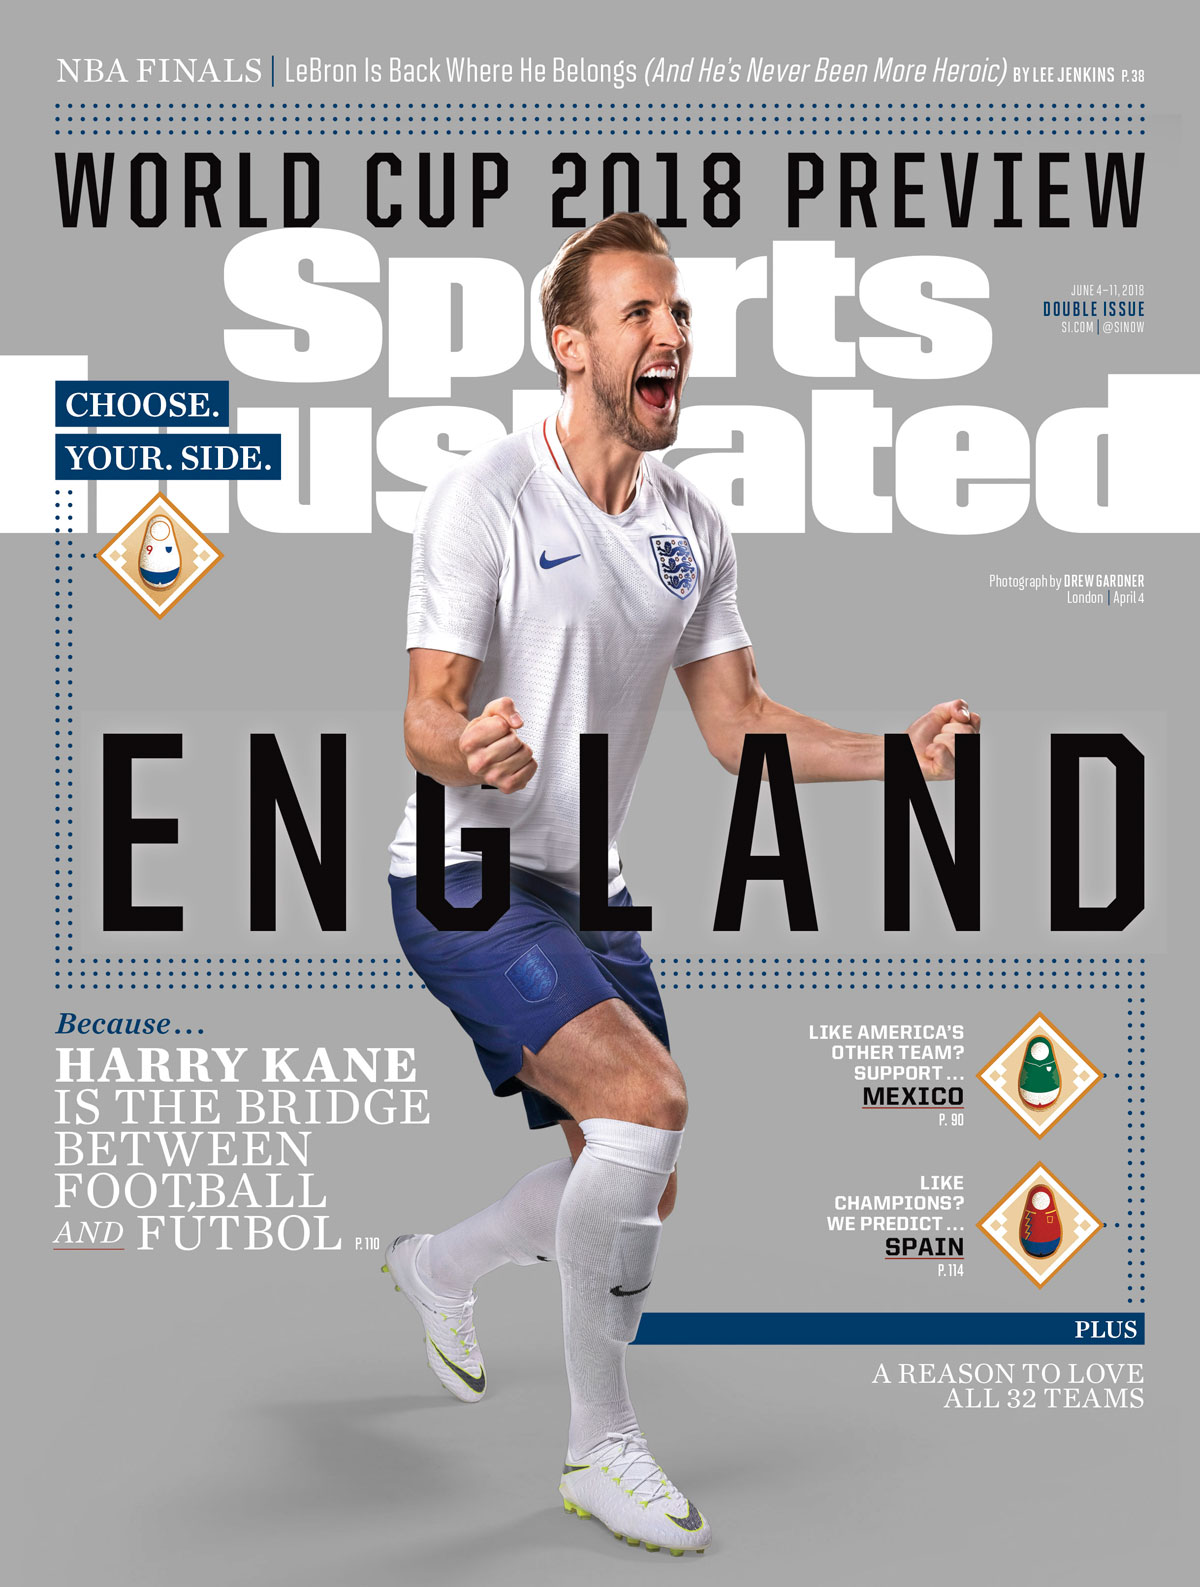 Harry Kane takes on England at the 2018 World Cup